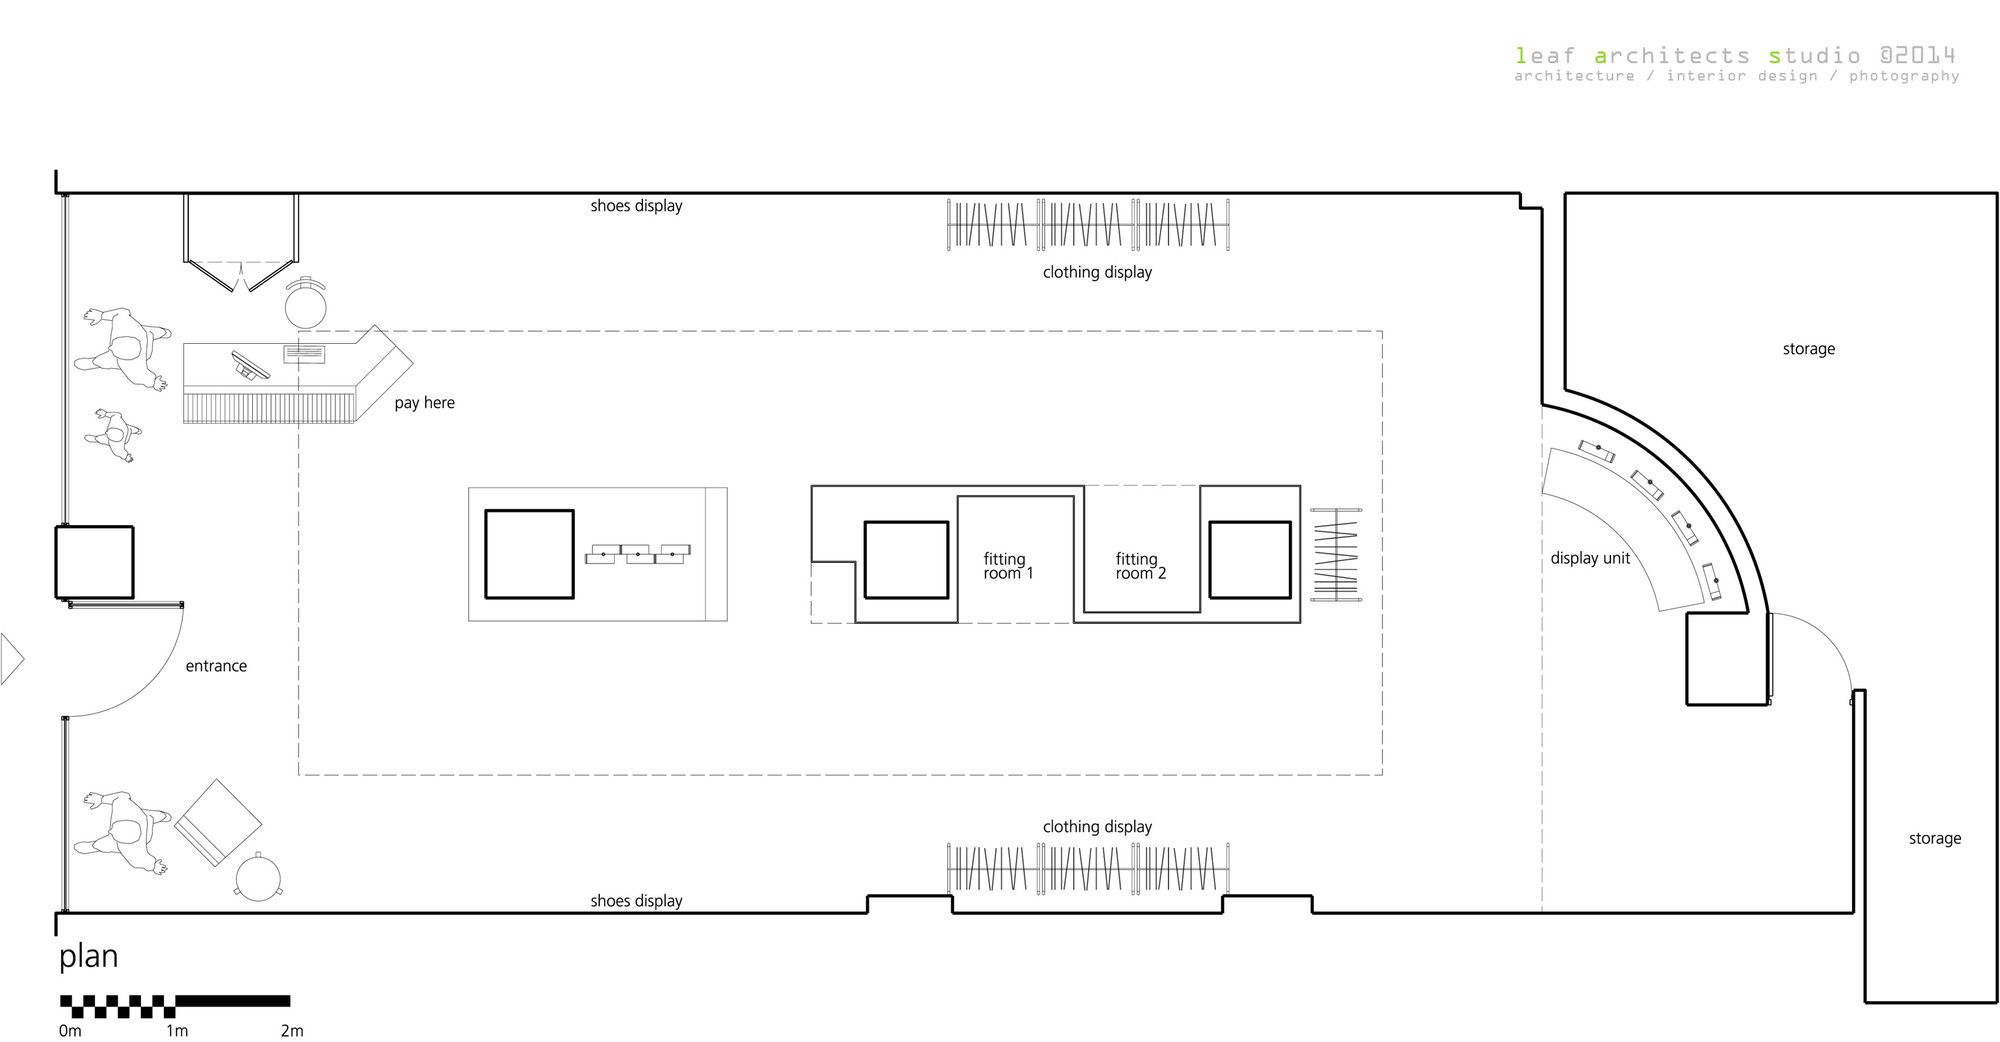 Gallery Of Ai Sport Leaf Architects Studio 16 Store Plan How To Plan Architect